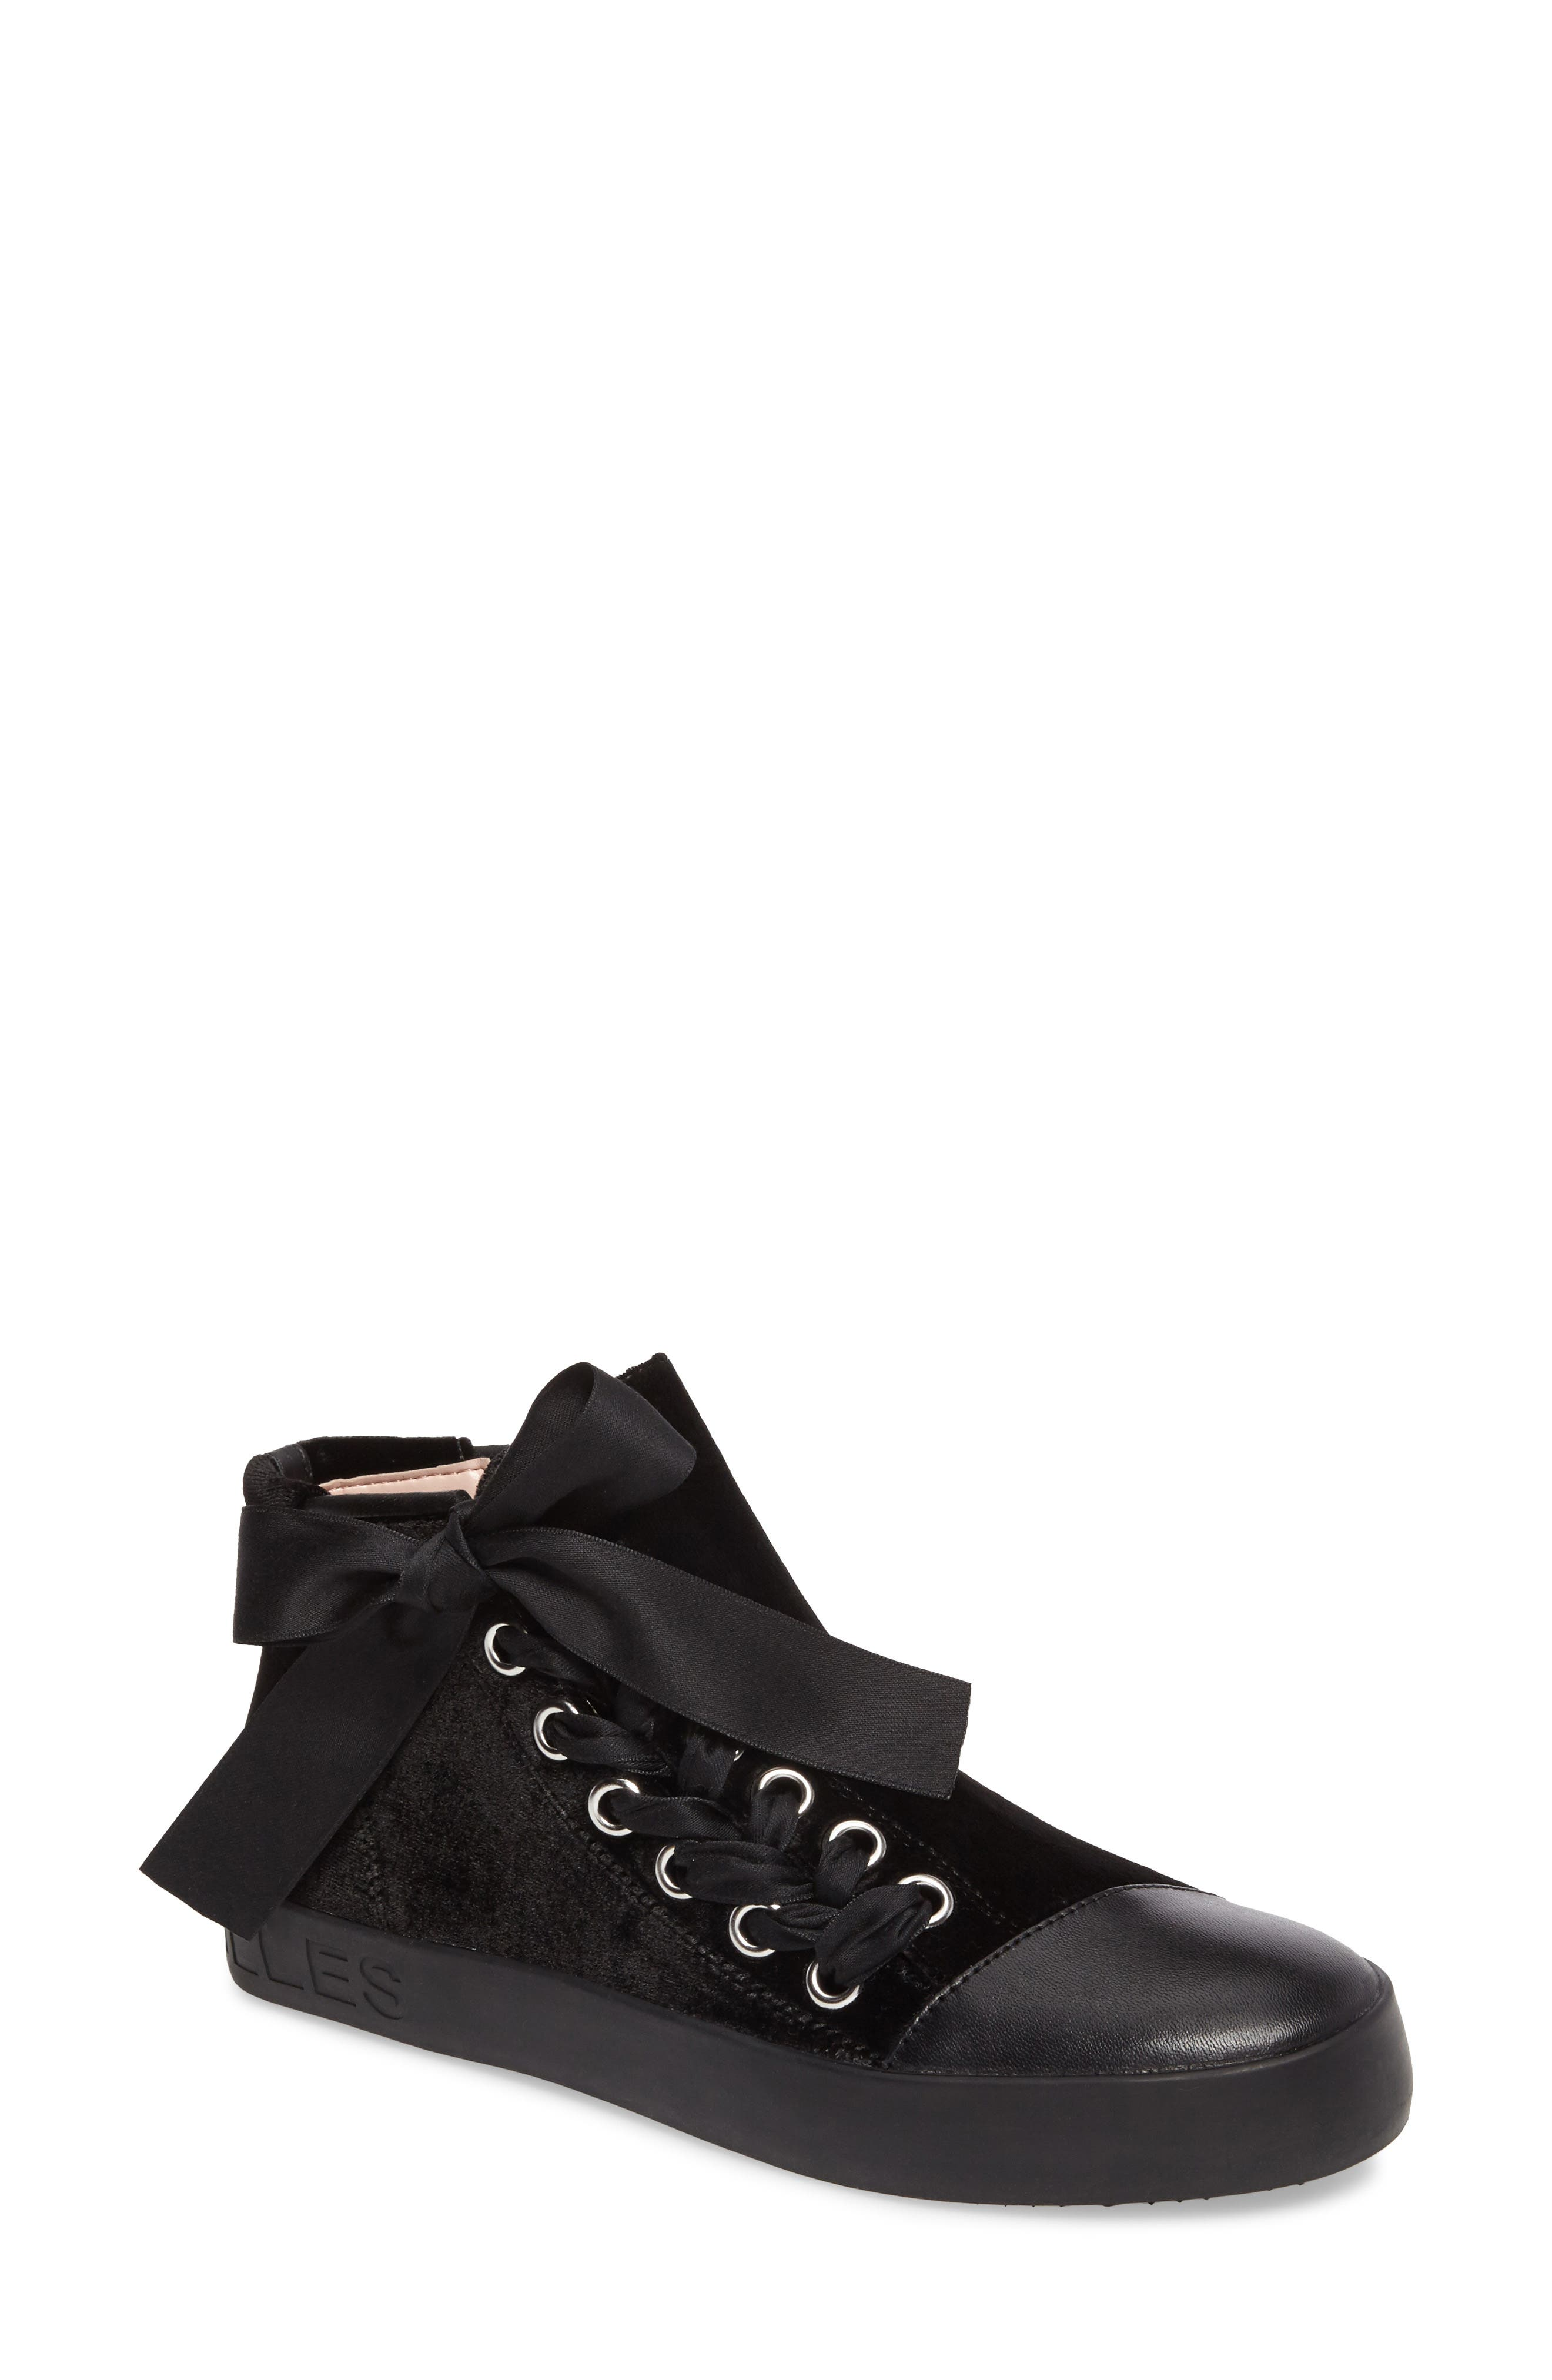 Valerie High Top Sneaker,                             Main thumbnail 1, color,                             Black Fabric\Leather